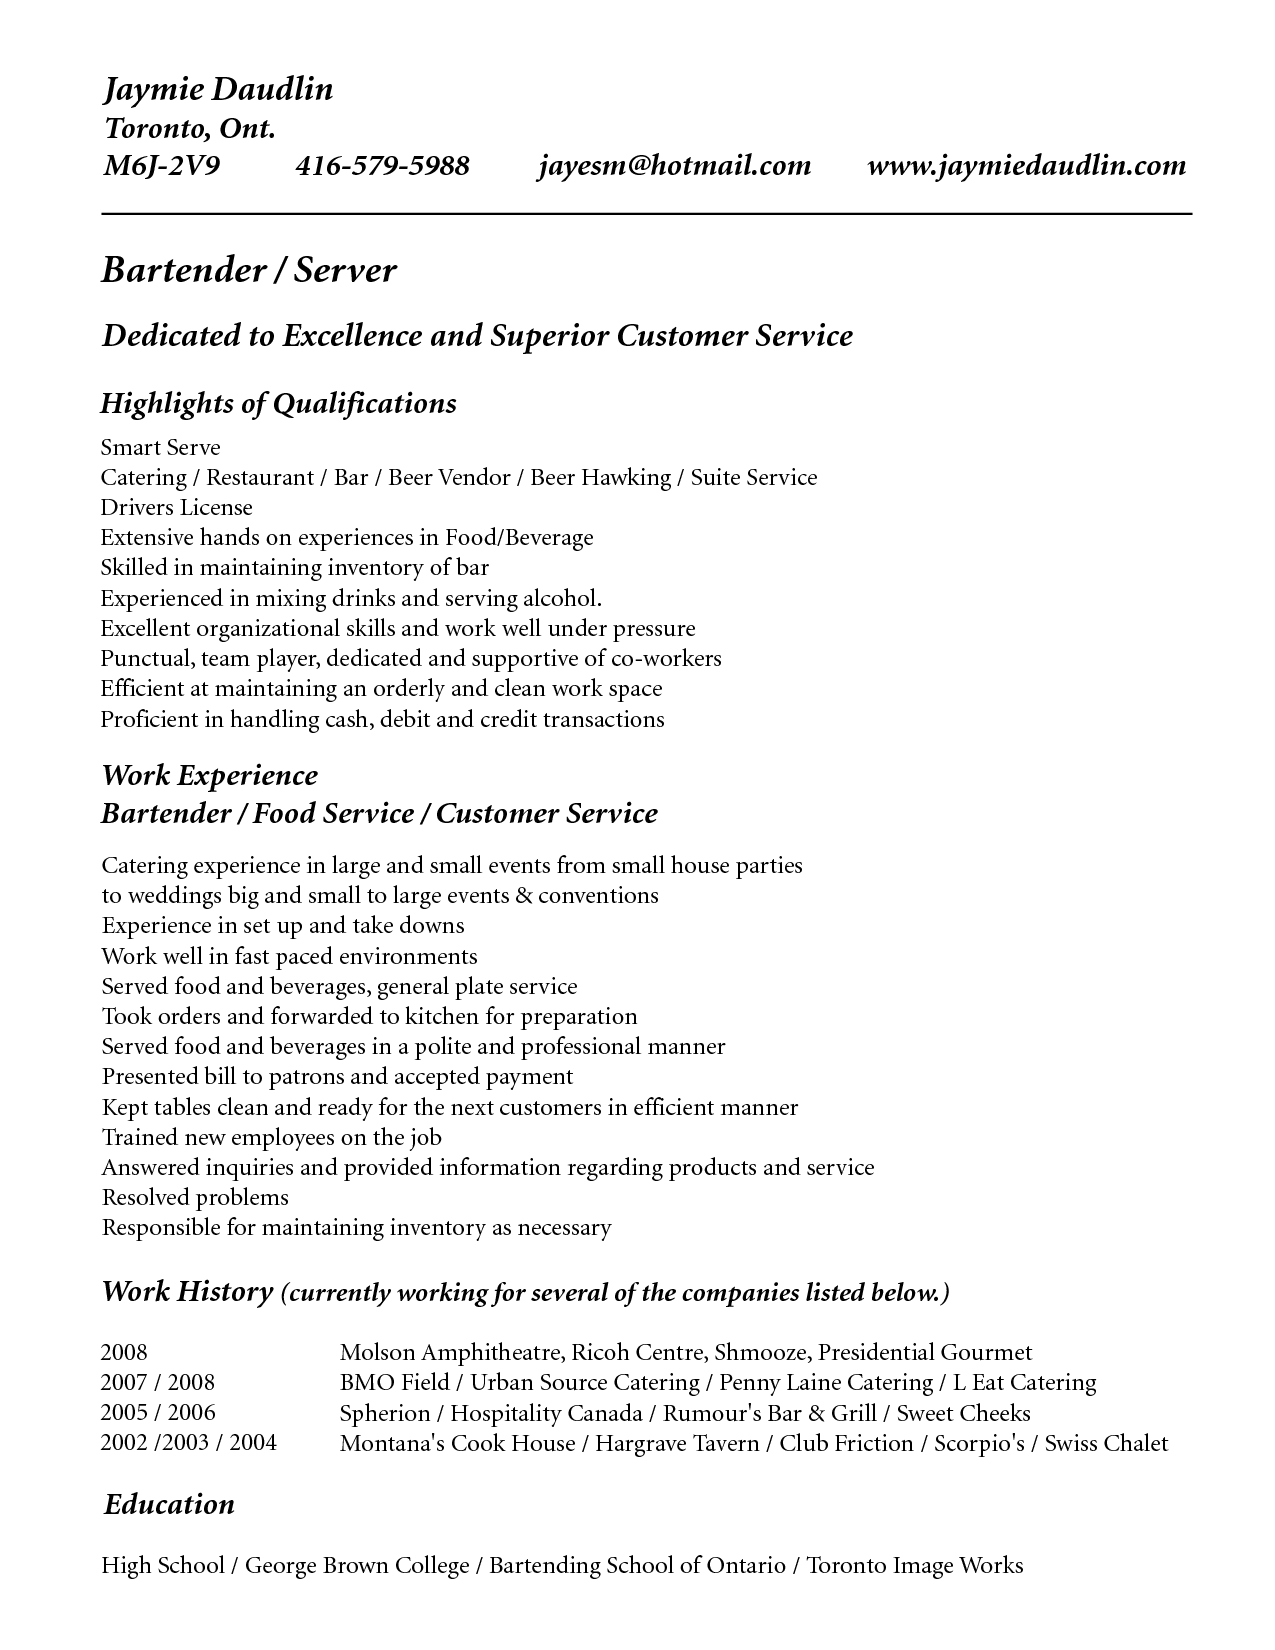 Resume Template For Bartender No Experience   Http://www.resumecareer.info  Bartender Job Description